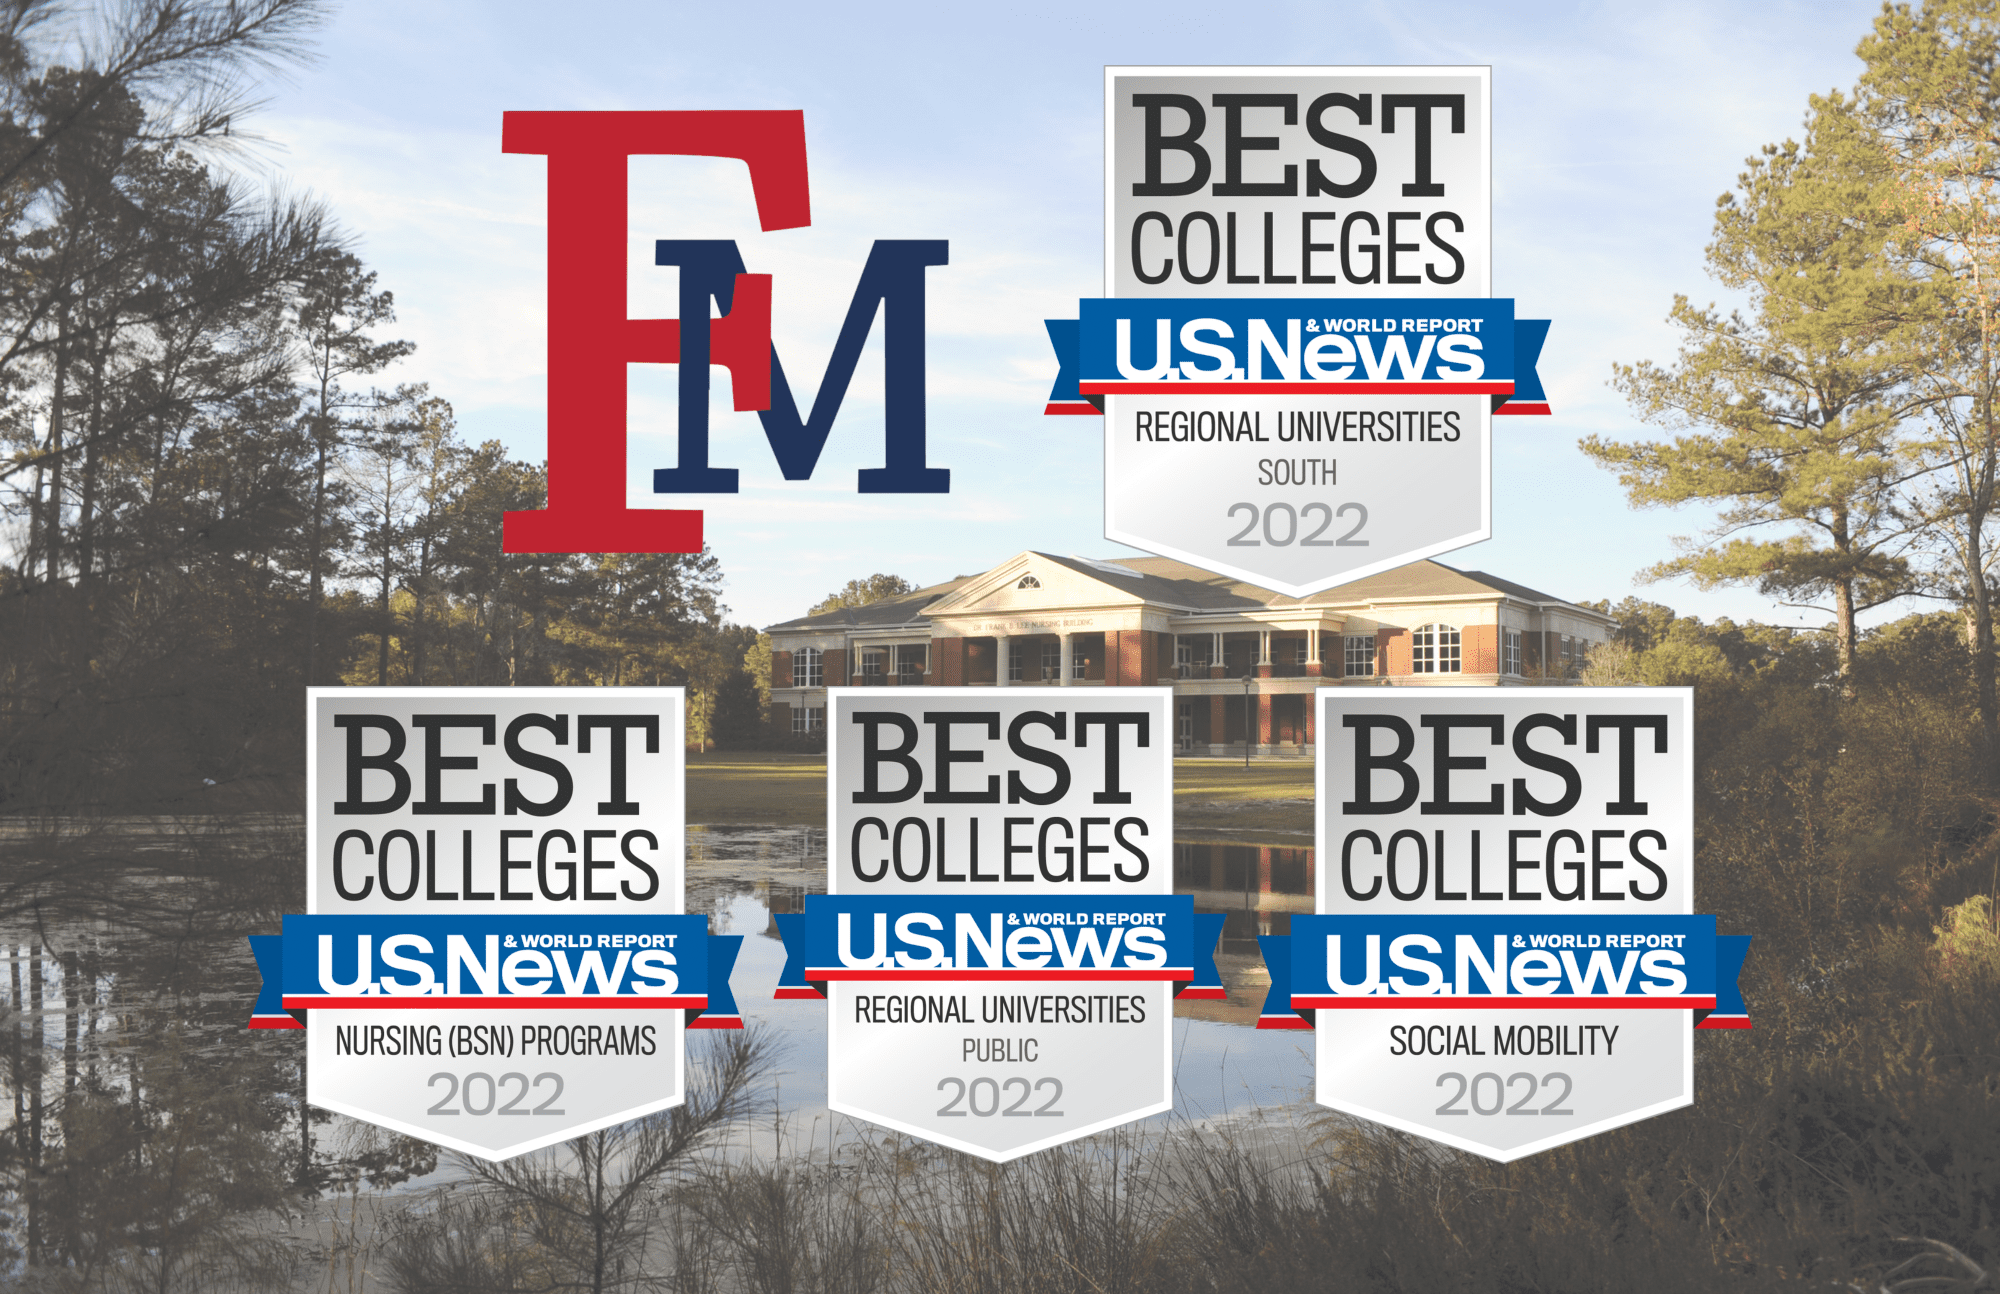 FMU ranked among best colleges in the South by U.S News & World Report